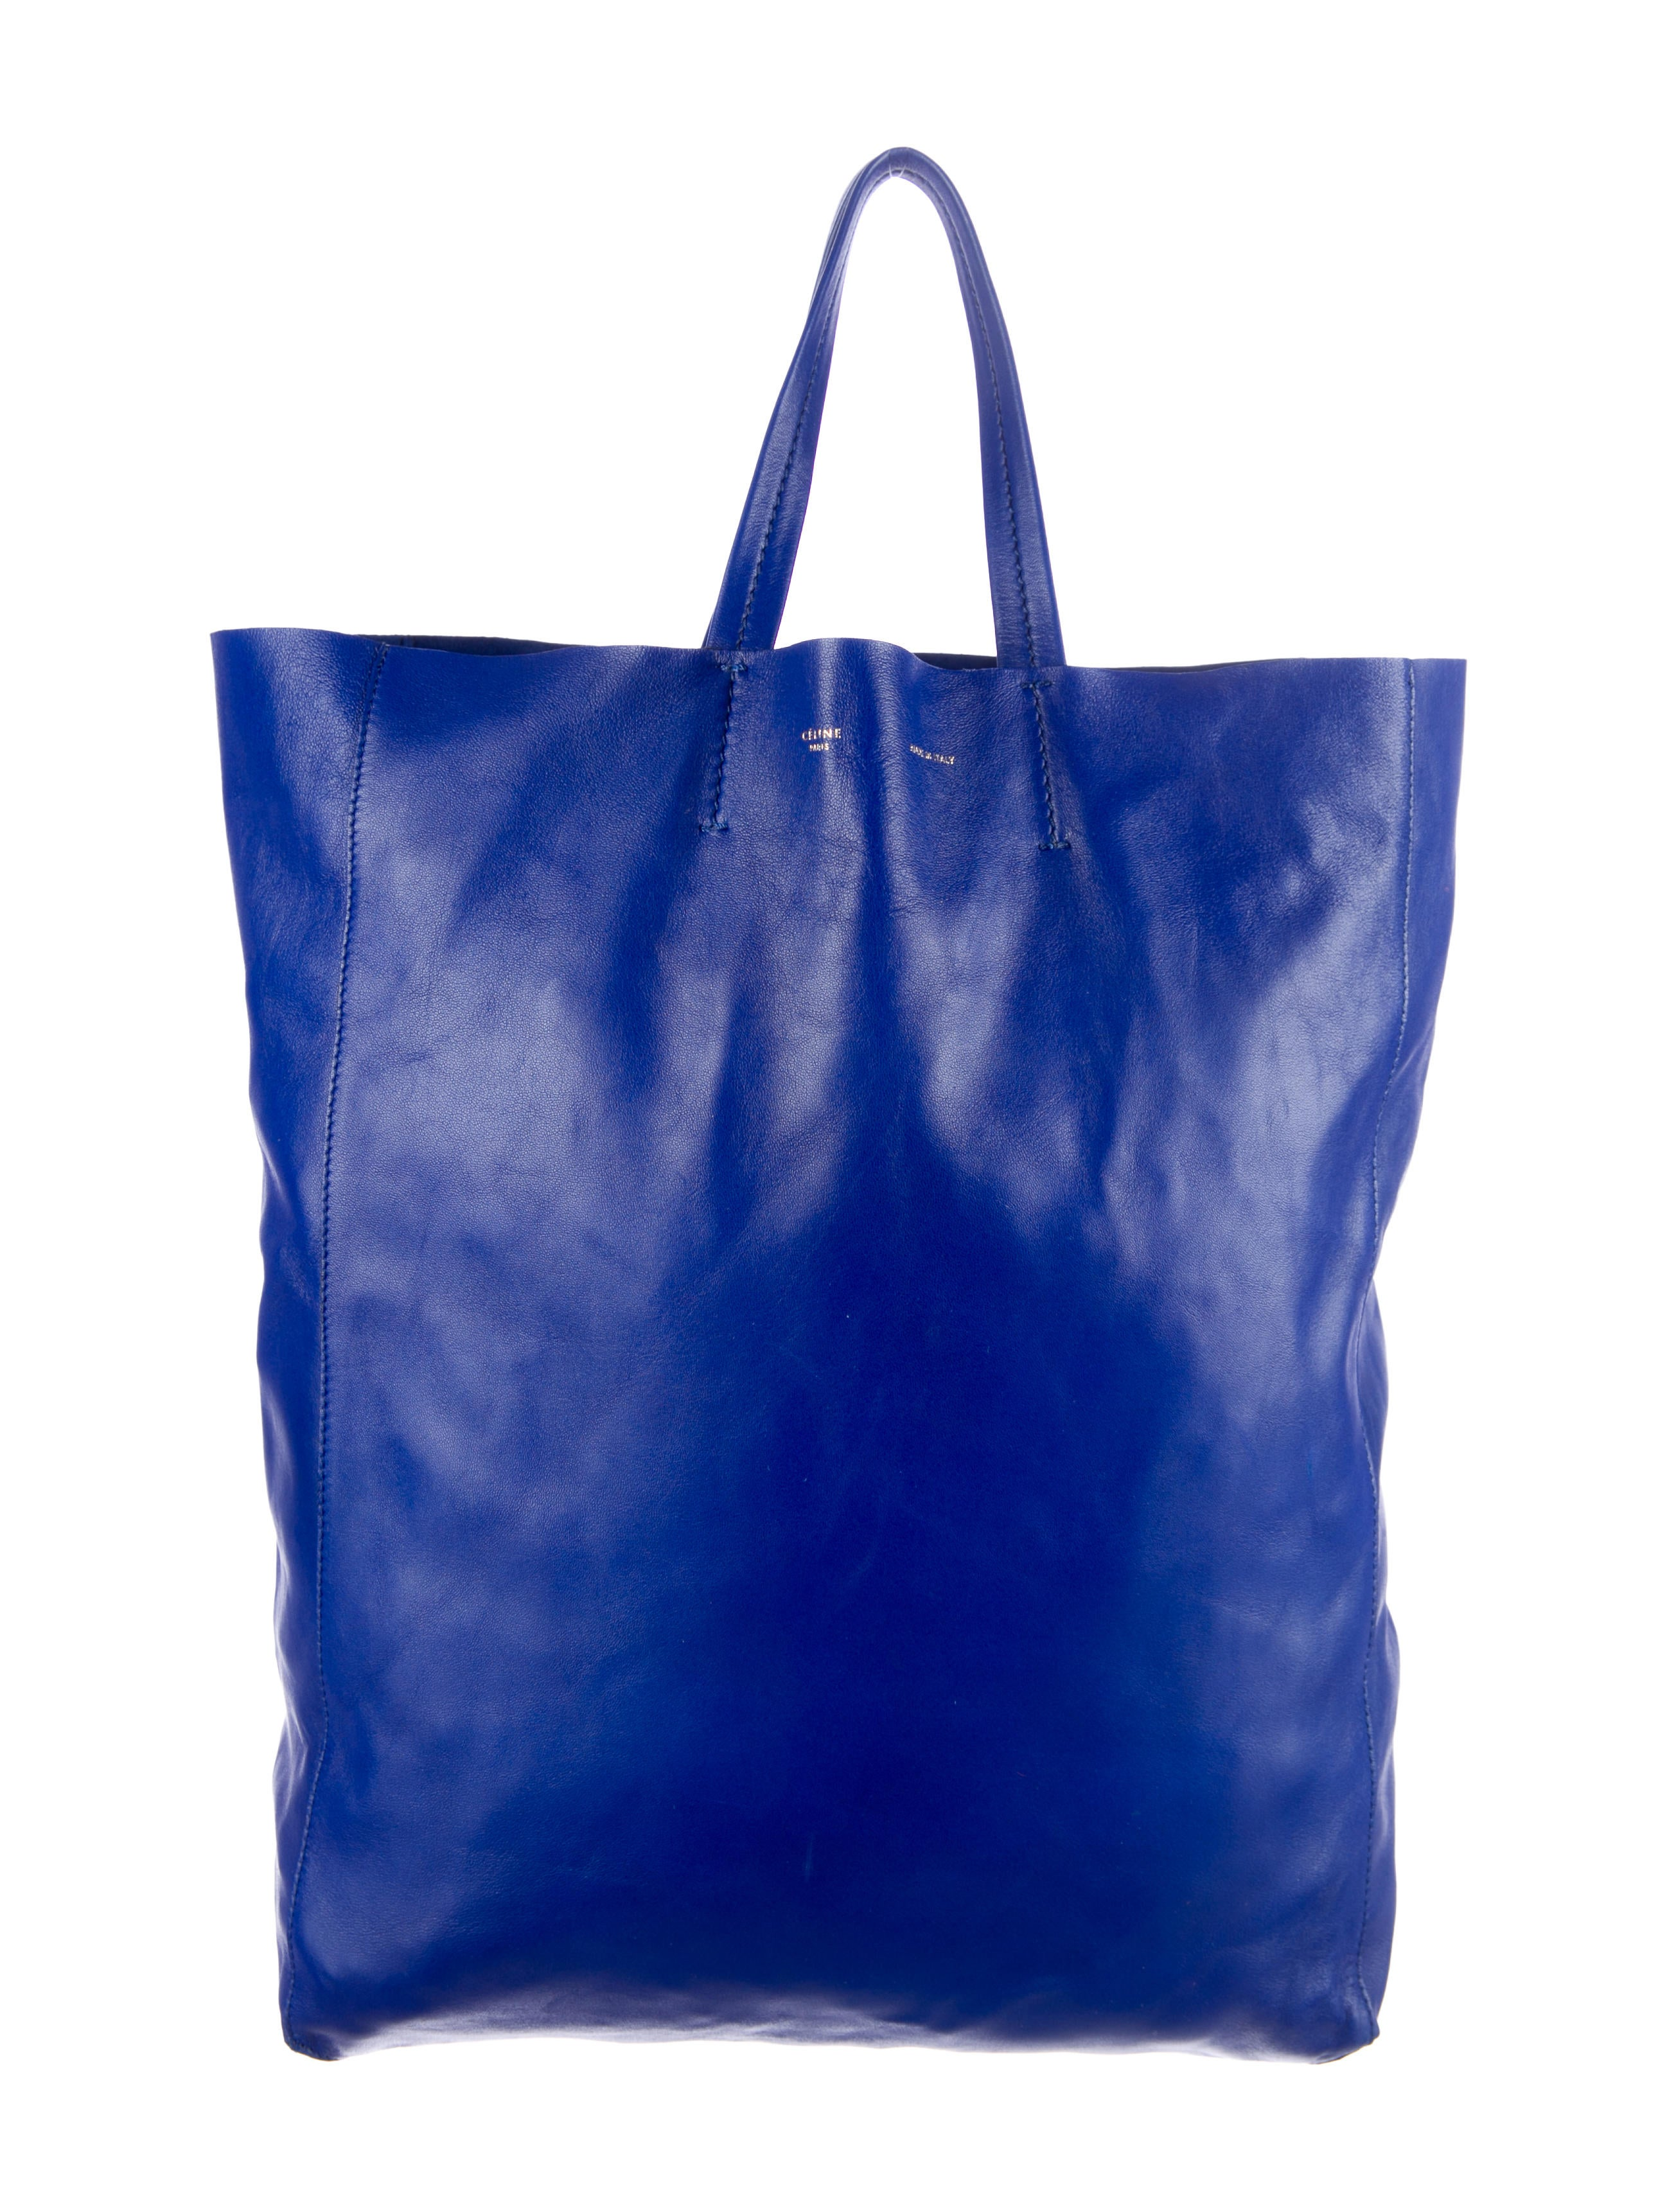 C¨¦line Vertical Cabas Tote - Mens Bags - CEL27470 | The RealReal